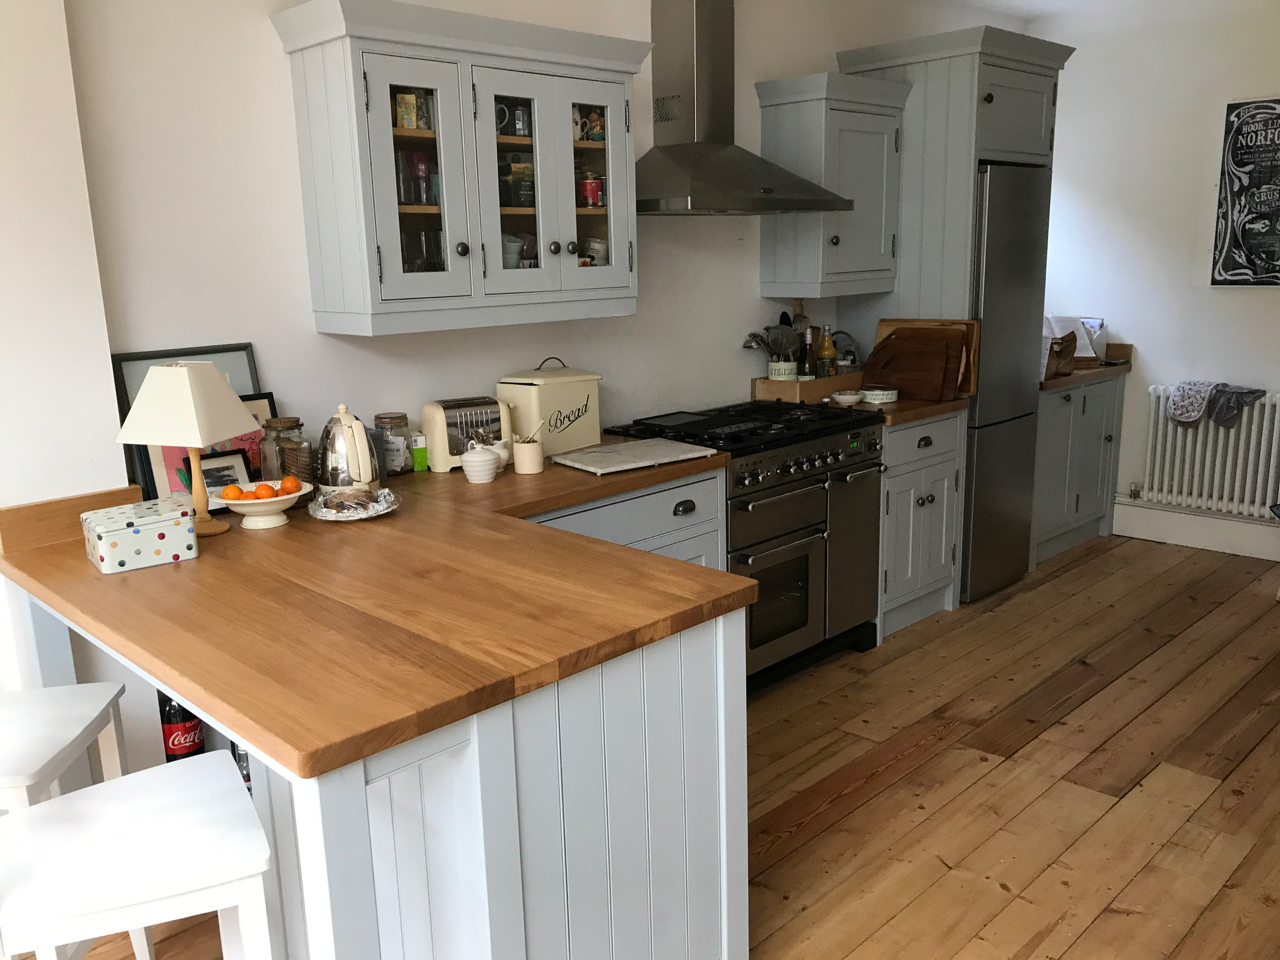 New oak worktop and customisation